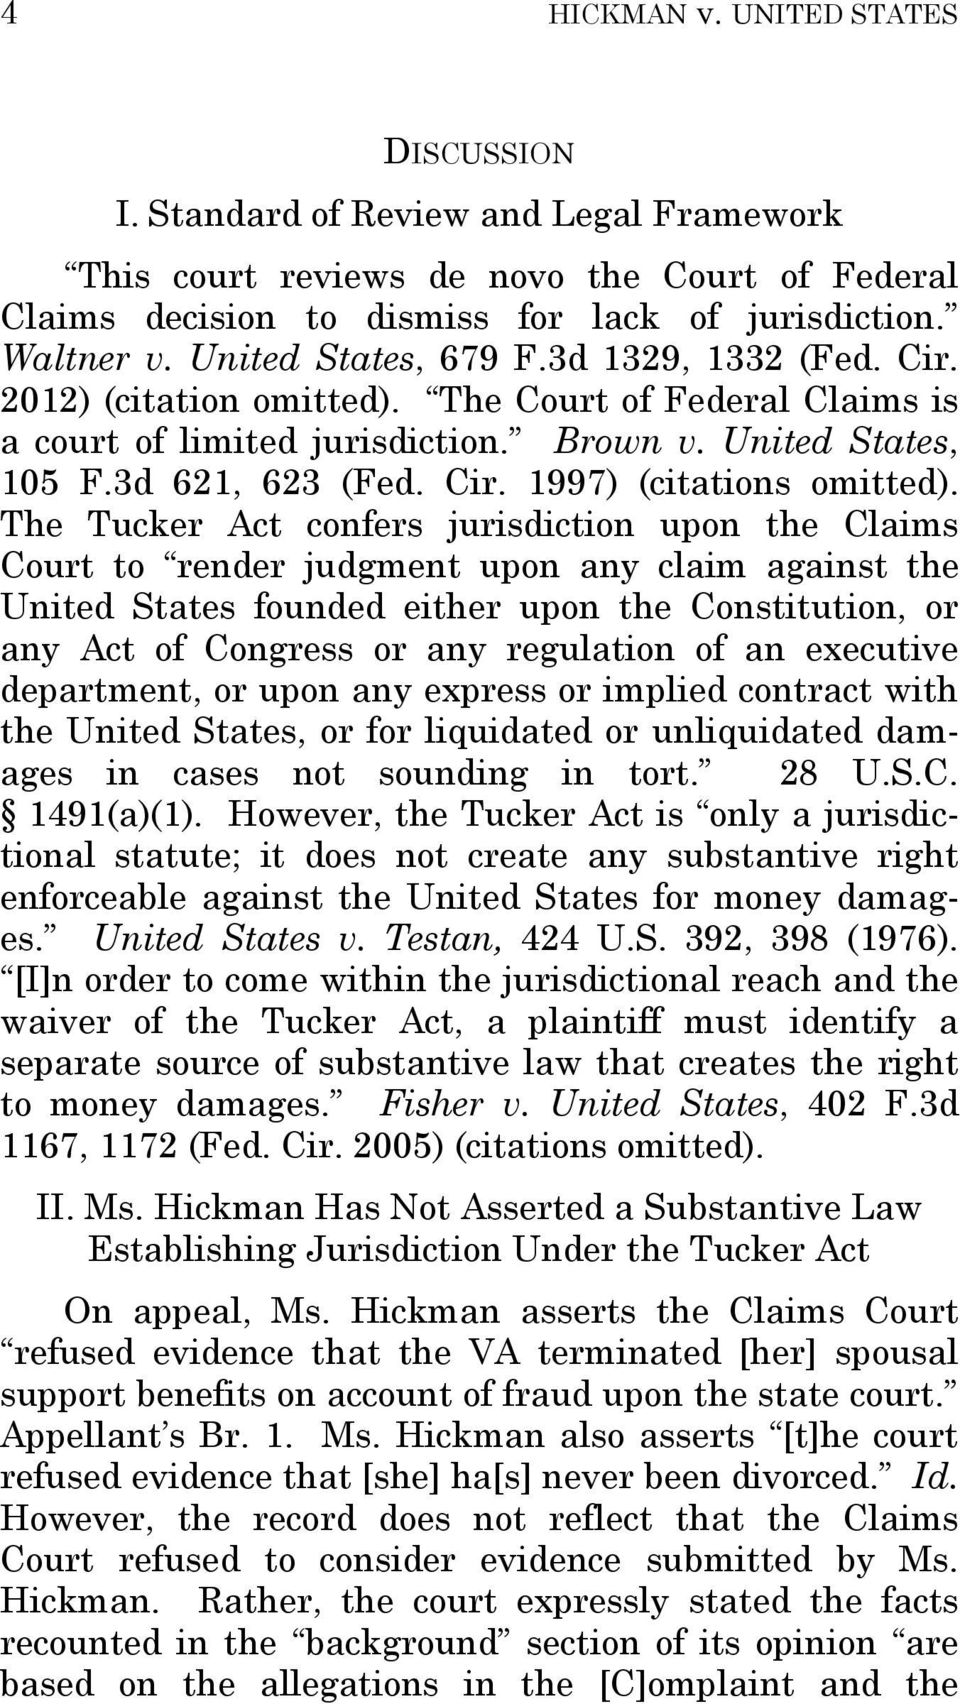 The Tucker Act confers jurisdiction upon the Claims Court to render judgment upon any claim against the United States founded either upon the Constitution, or any Act of Congress or any regulation of